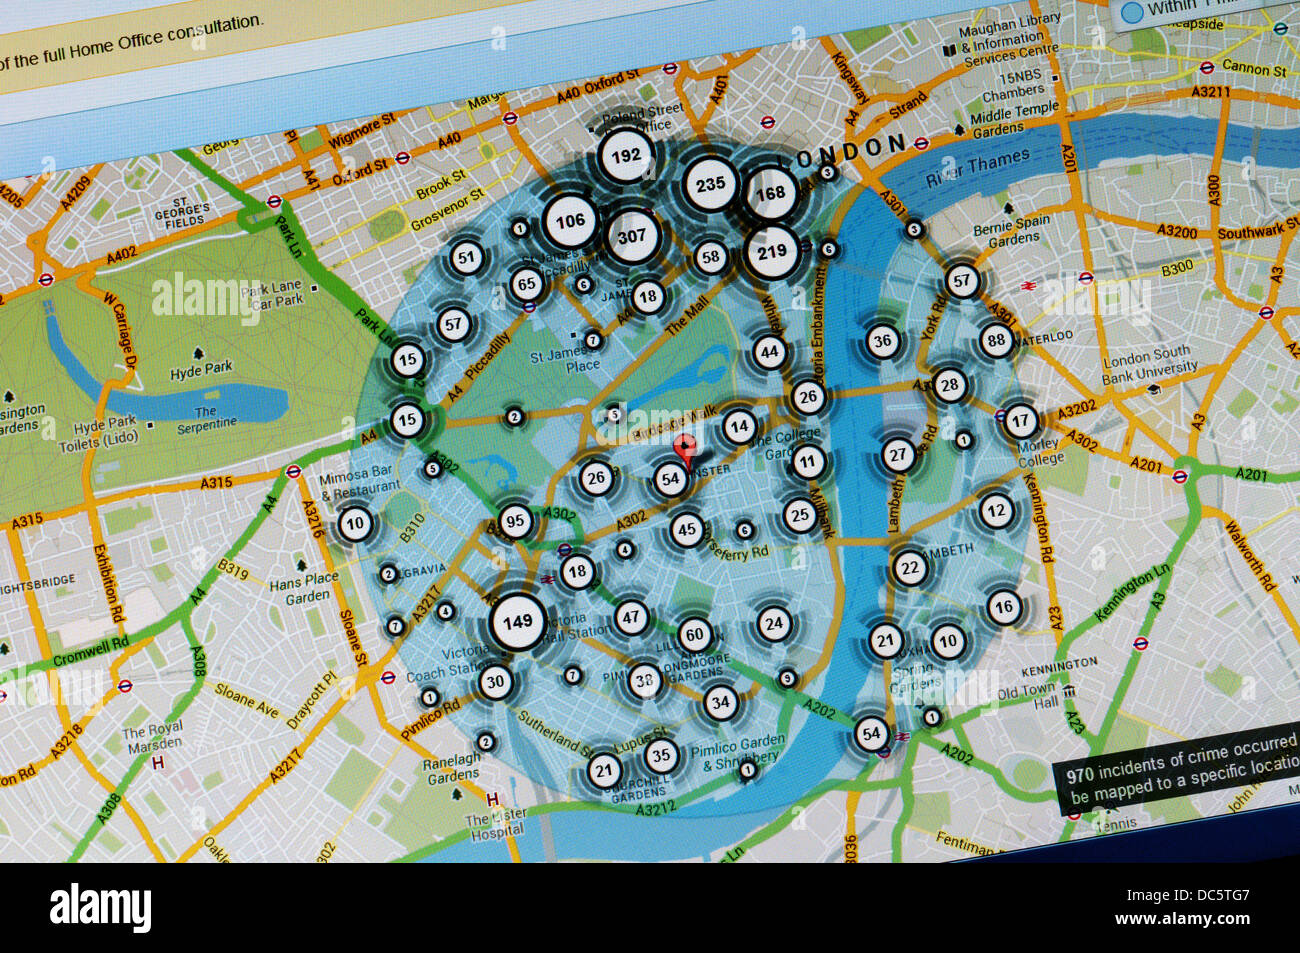 Incidence of crime in central London Westminster area shown on crime